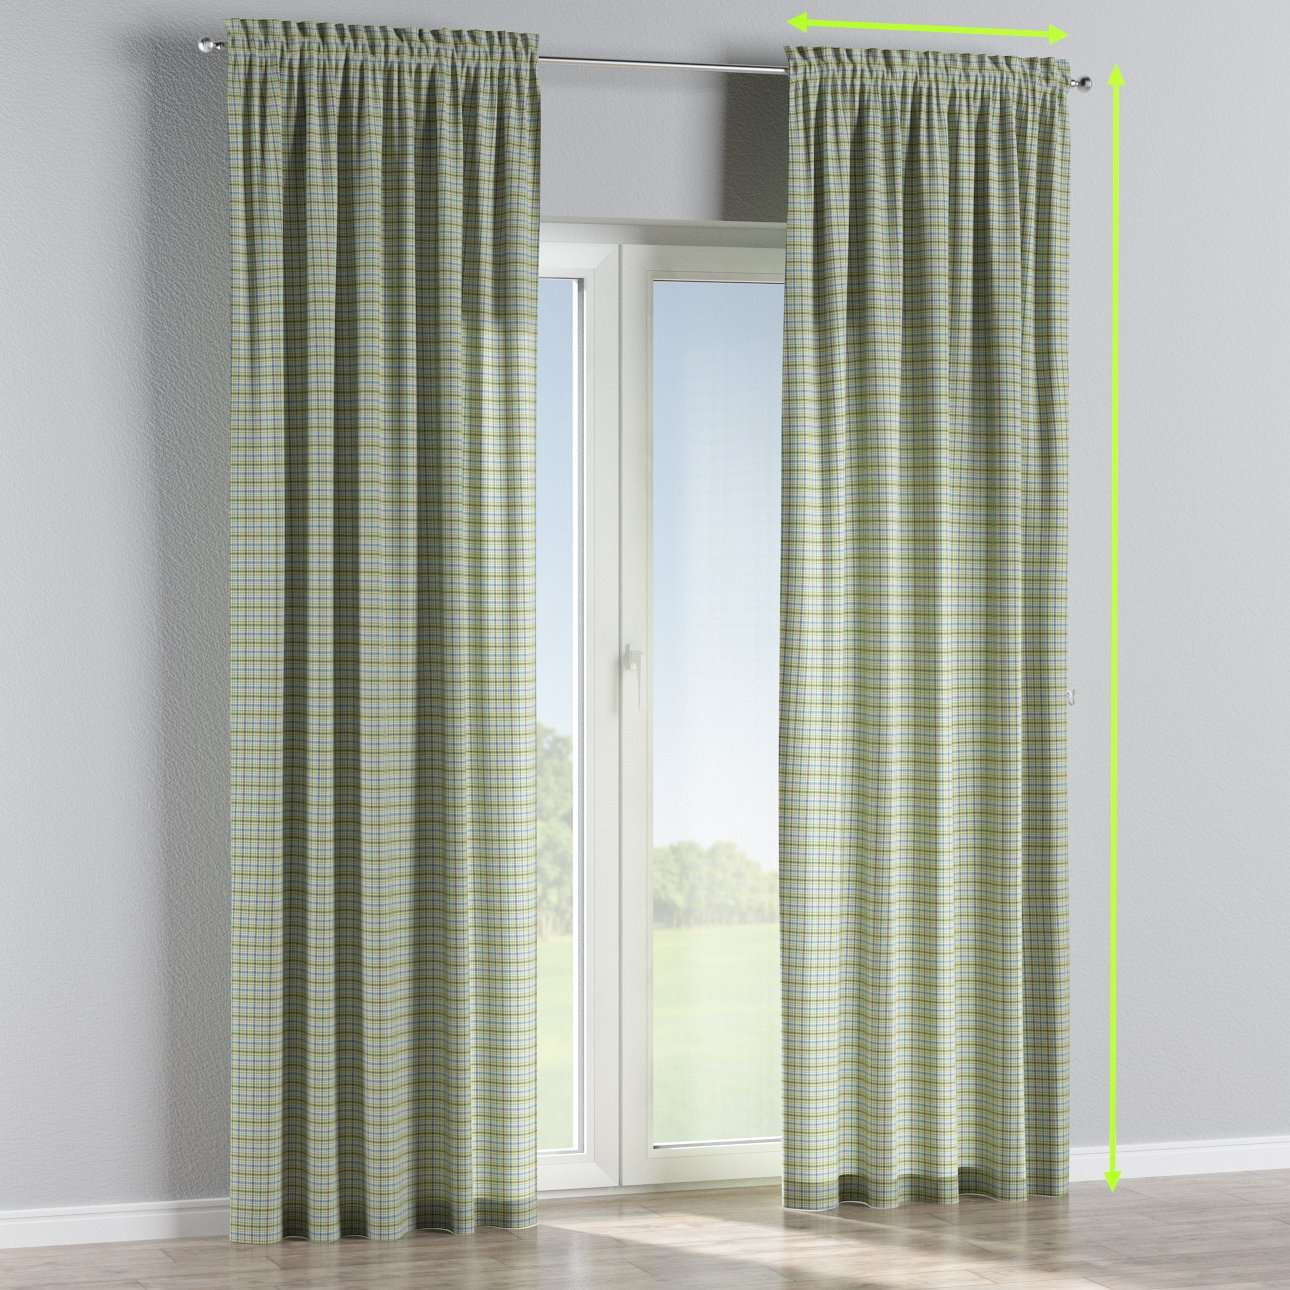 Slot and frill curtains in collection Bristol, fabric: 126-69